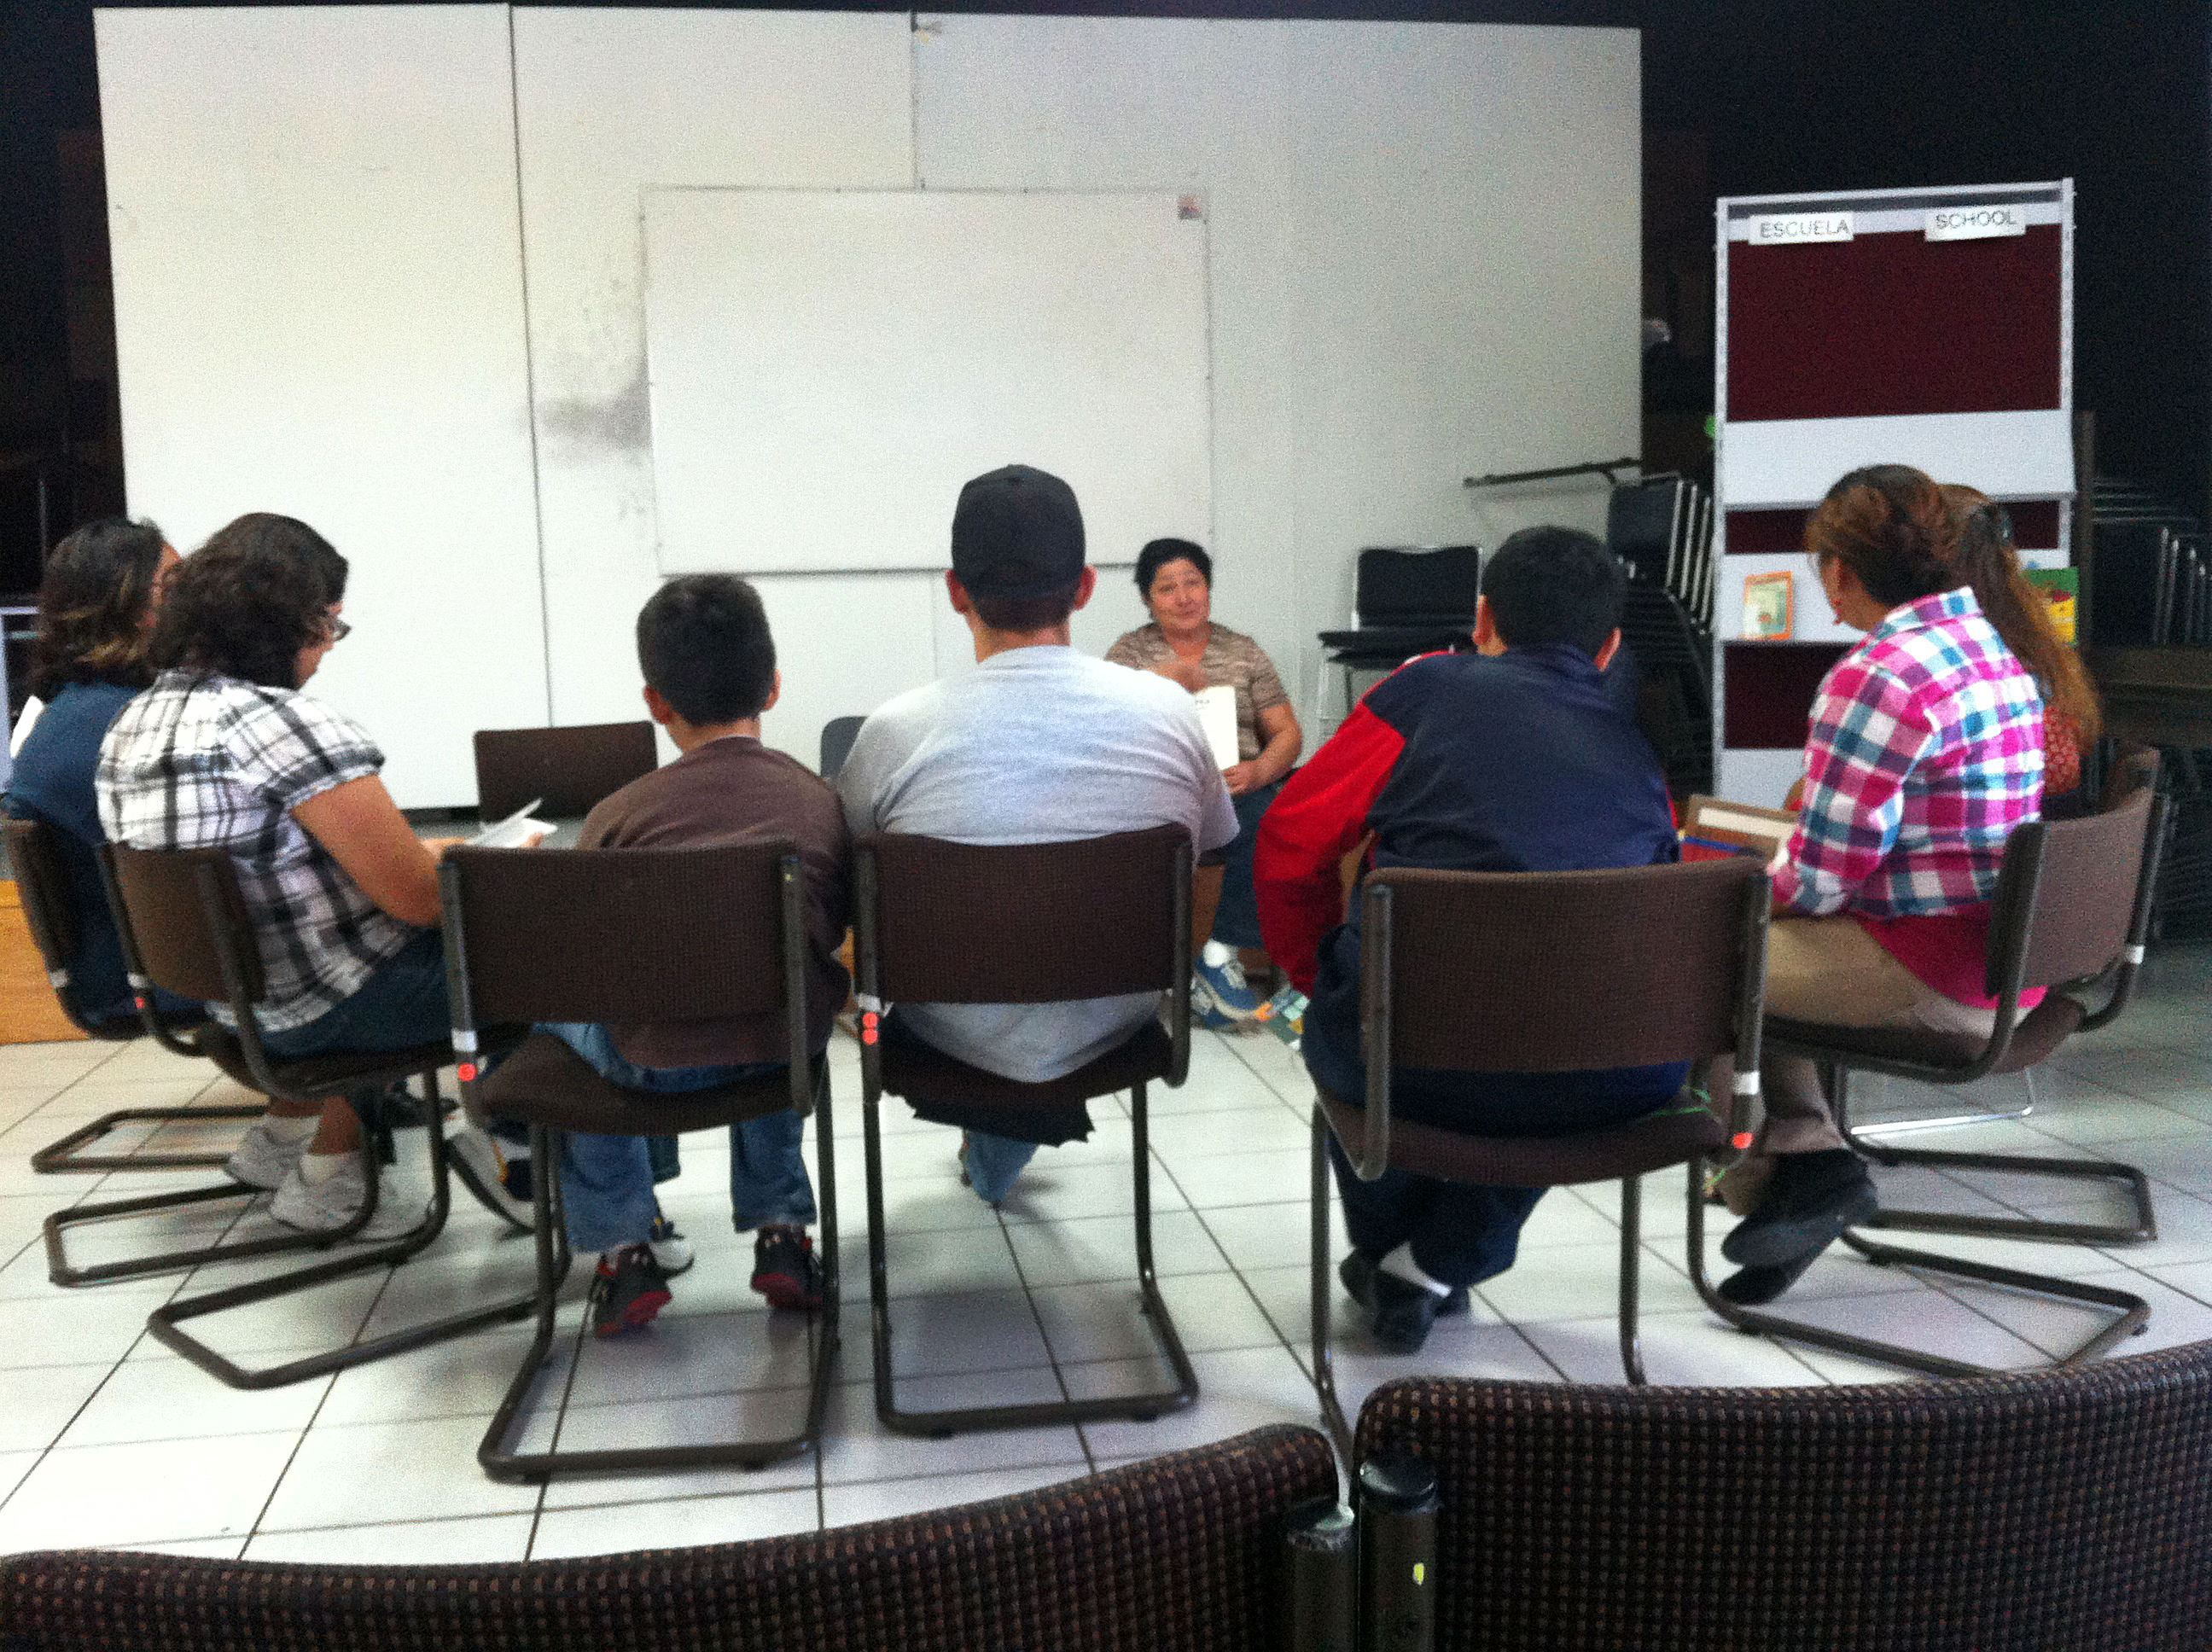 Caption: Support group meeting for foreign students and their parents at the Biblioteca Benito Juárez in Tijuana., Credit: Joel Medina